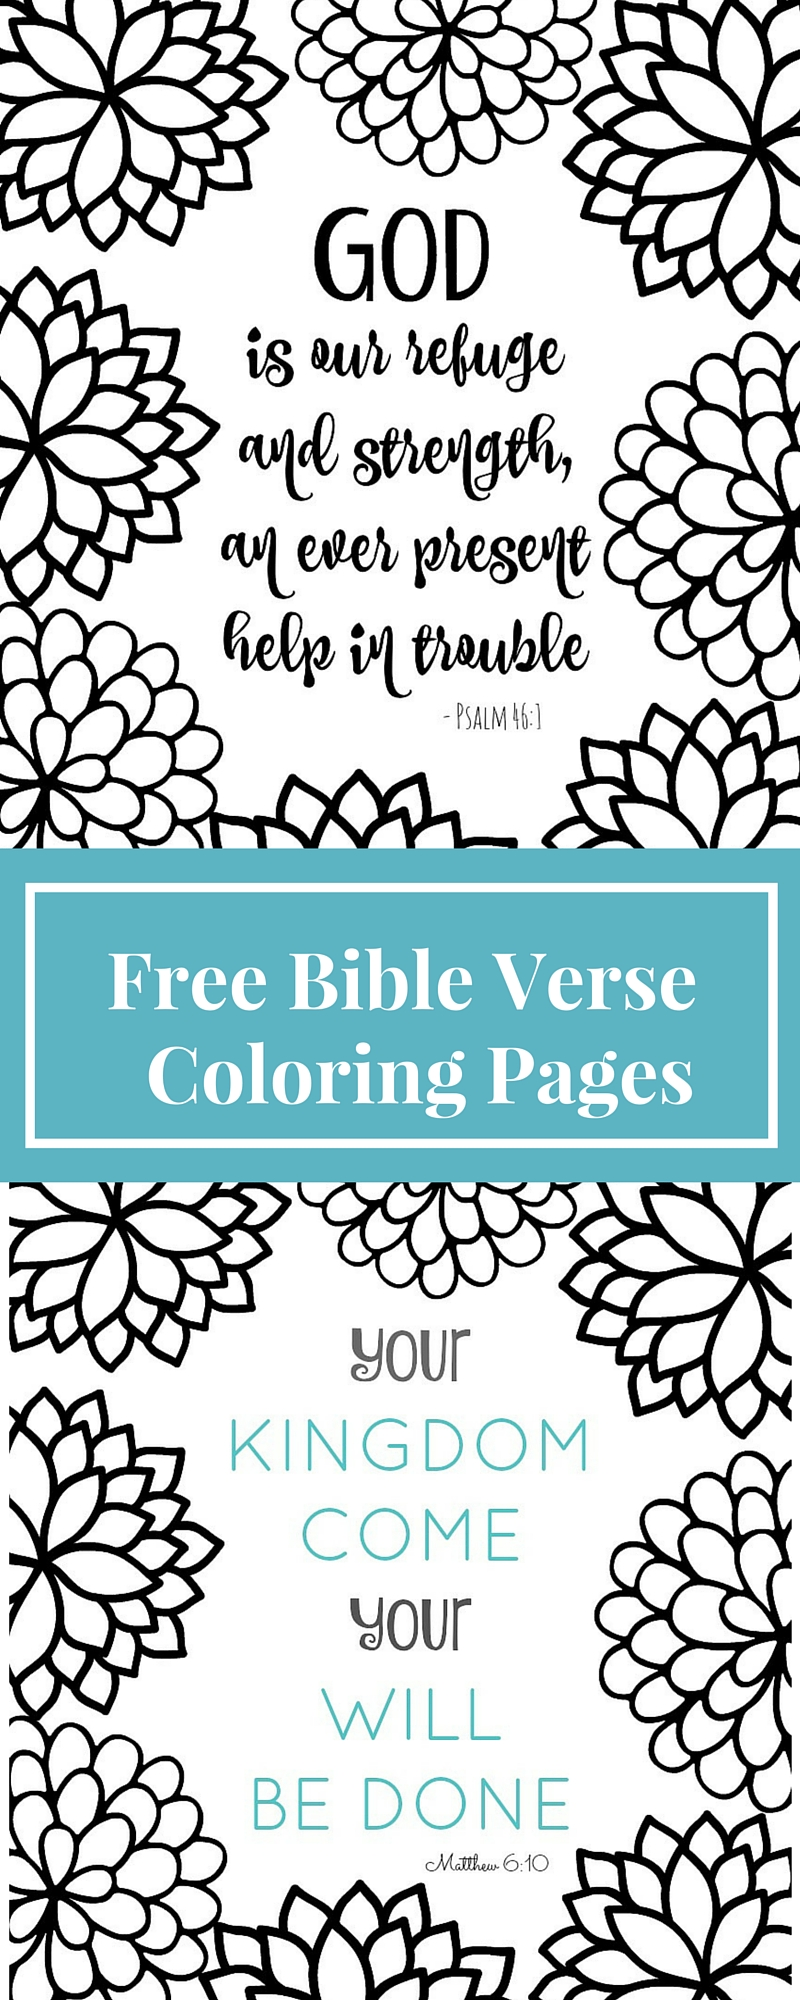 photo regarding Free Printable Scripture Verses known as Totally free Printable Bible Verse Coloring Webpages with Bursting